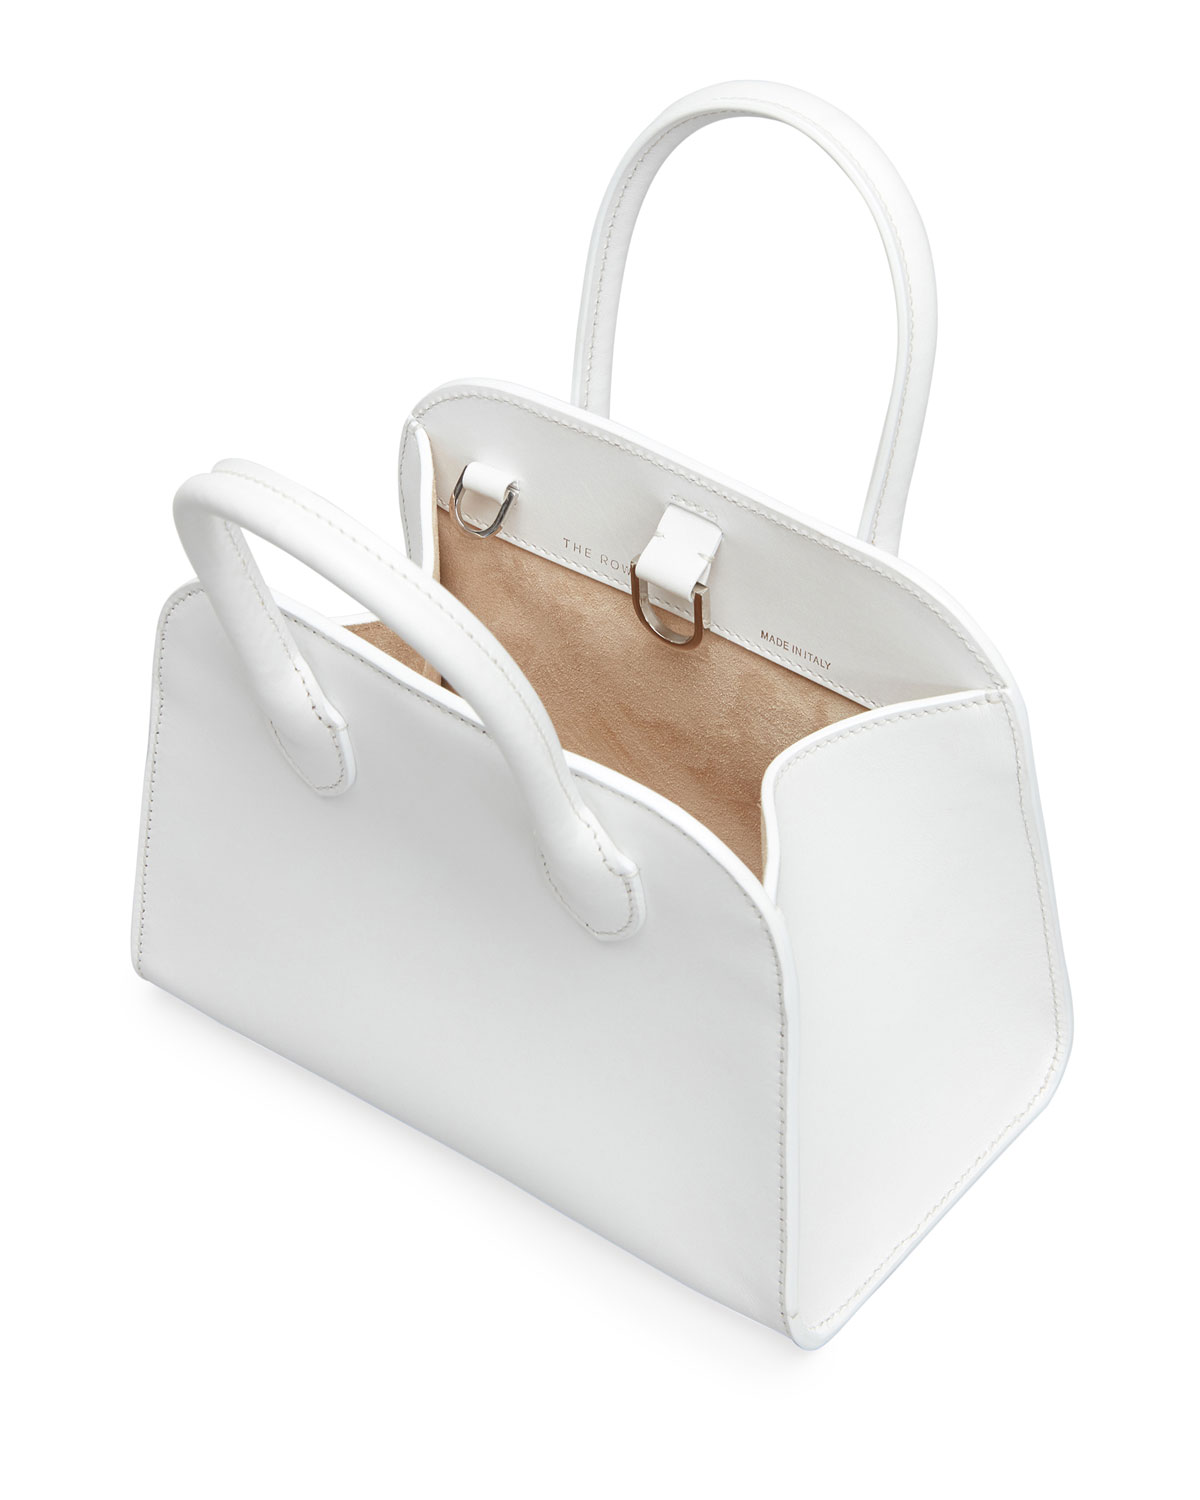 Margaux White Bag by The Row, available on neimanmarcus.com for $2250 Kendall Jenner Bags Exact Product